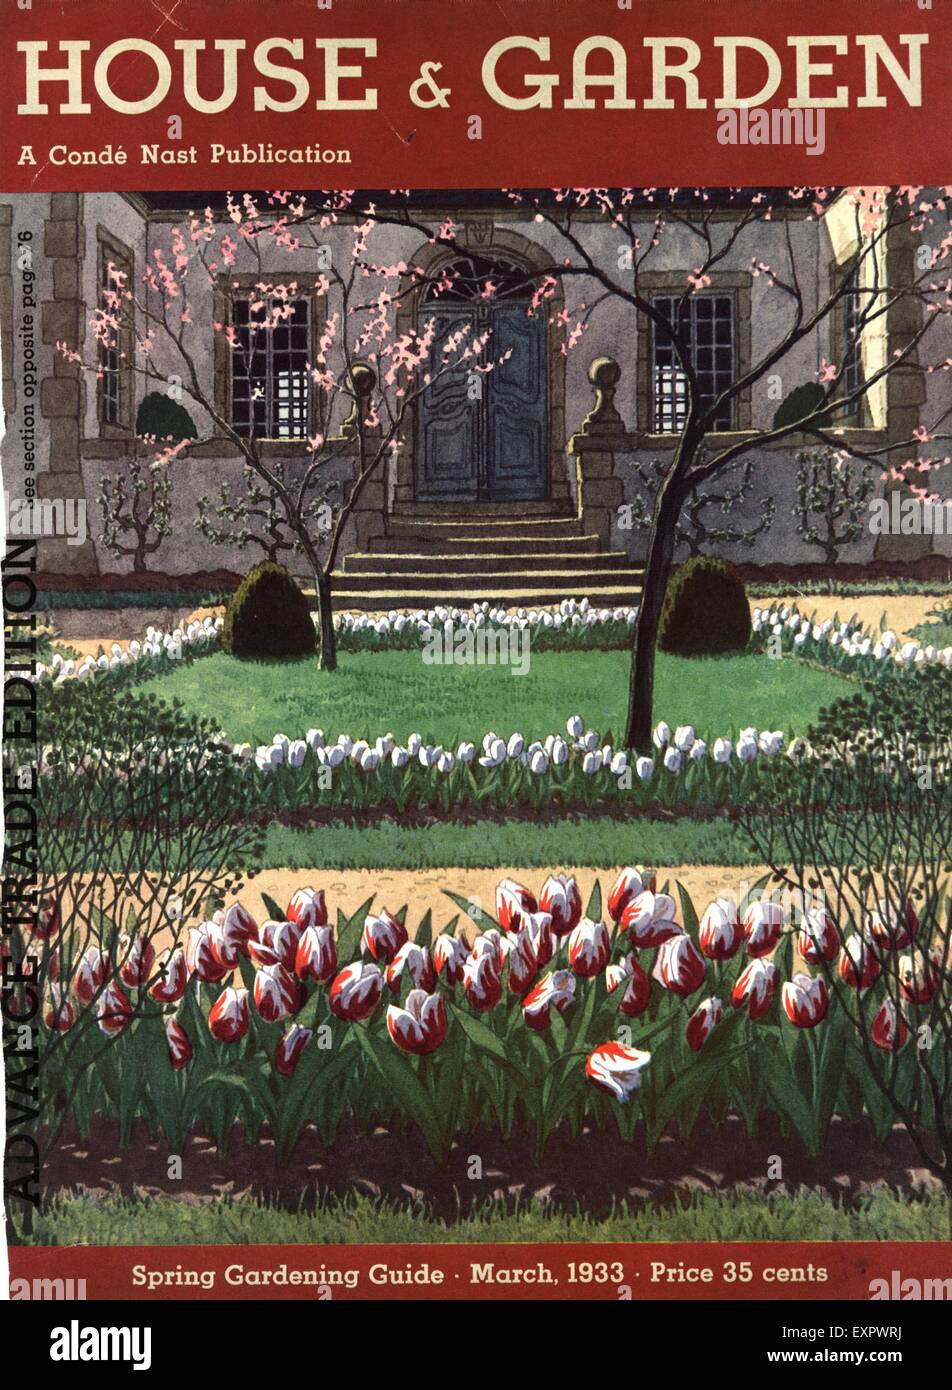 Awesome 1930s USA House And Garden Magazine Cover